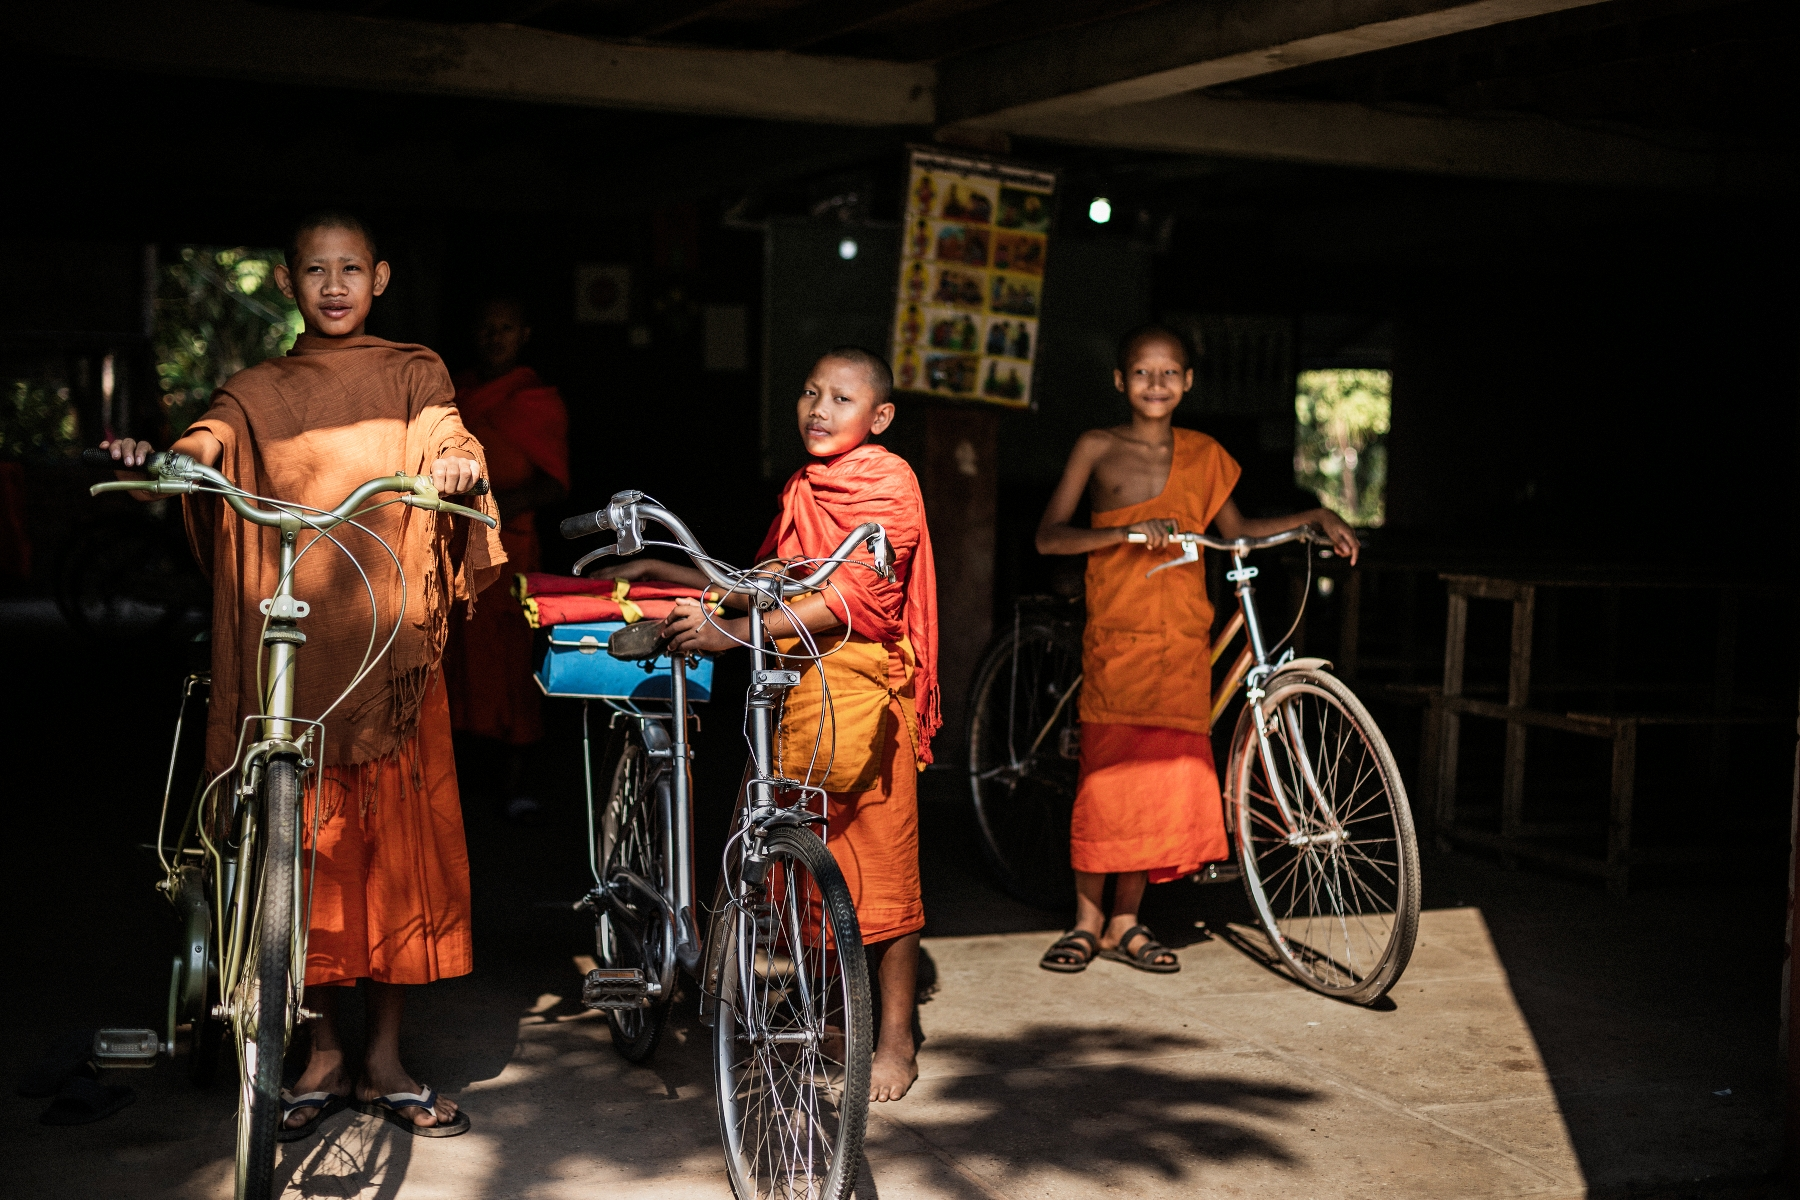 Children monks getting ready for at bicycle ride